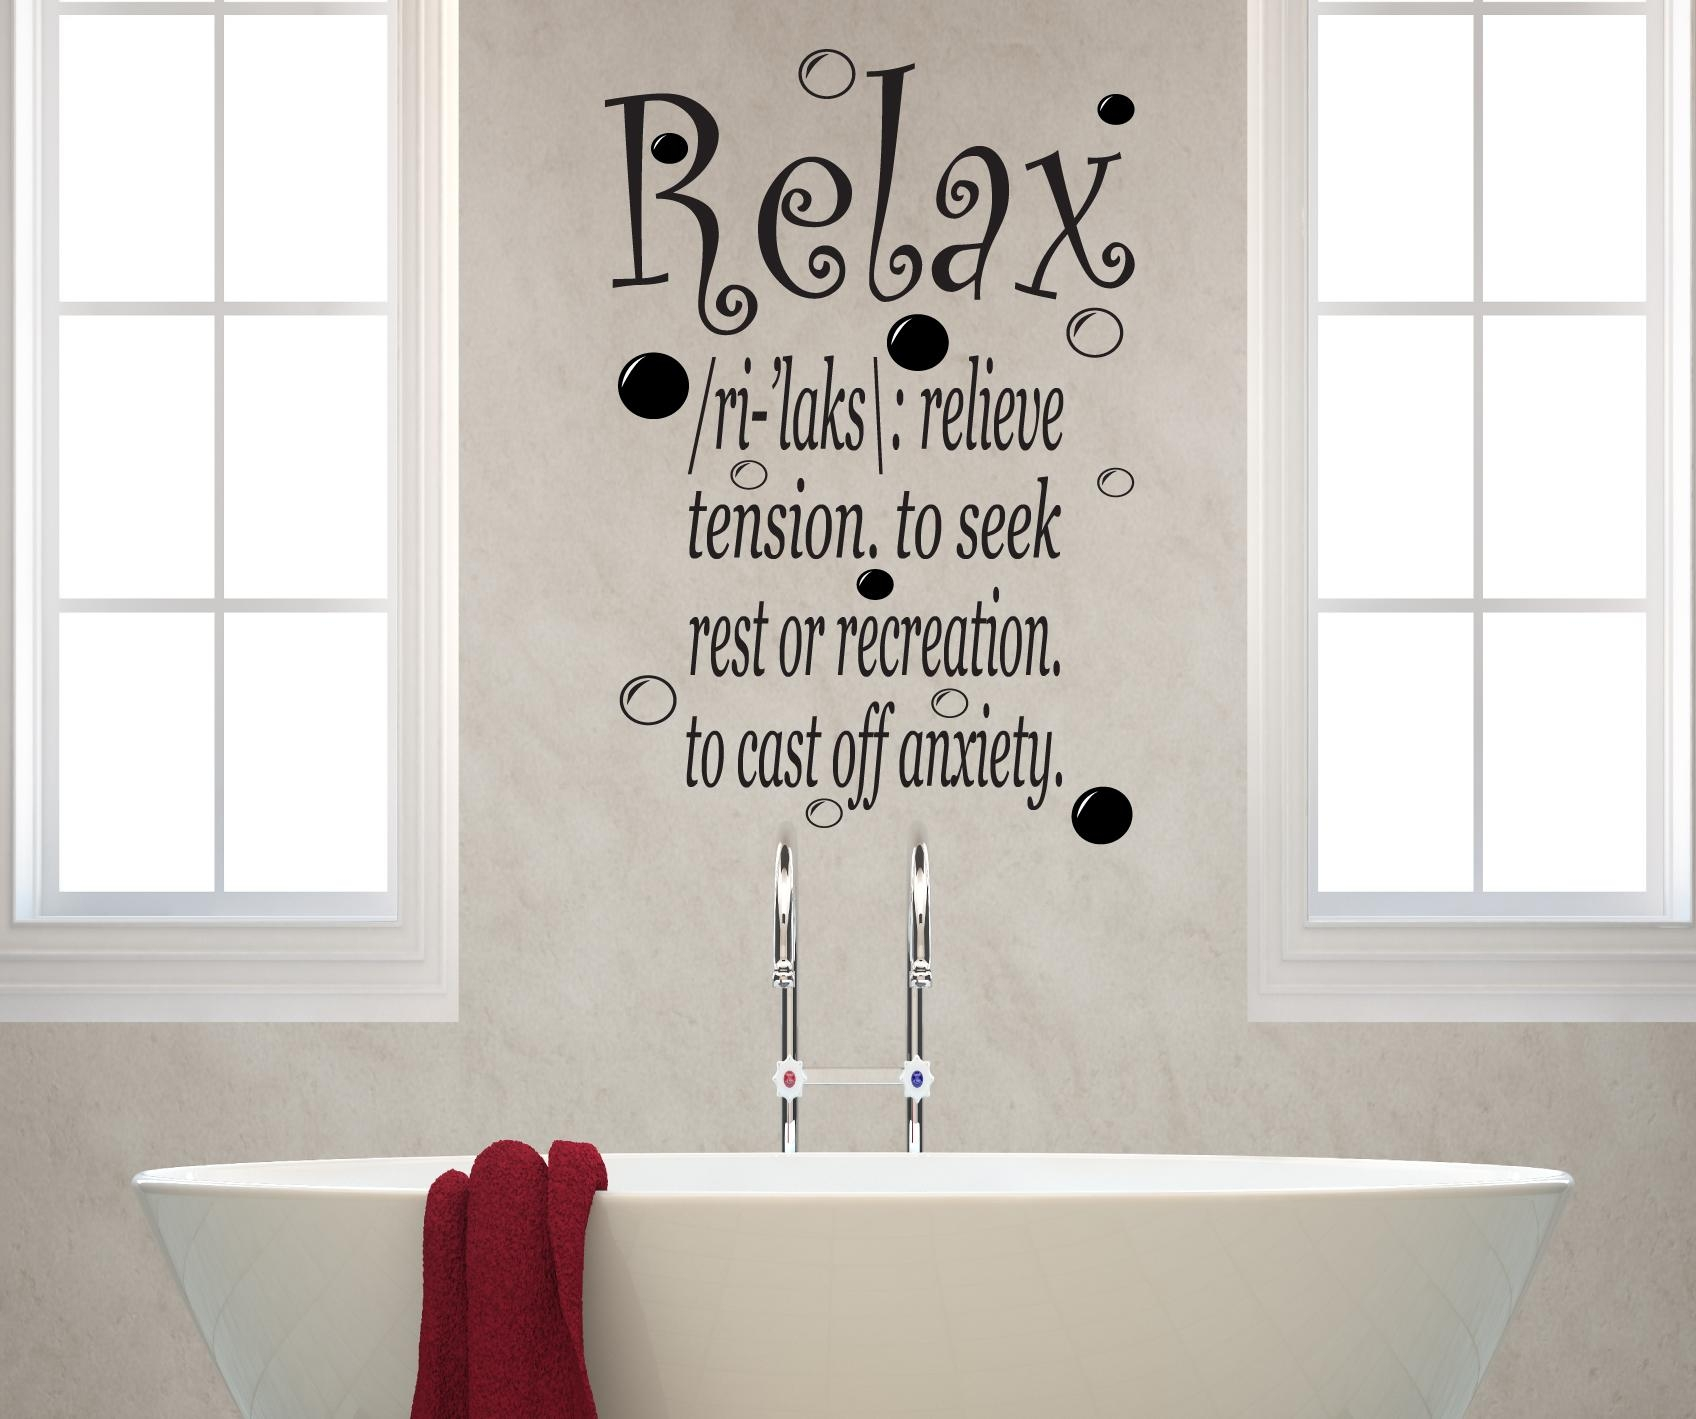 Wall Art For 2017 With Bathroom Patent Posters Group Of Decor Within Wall Art For The Bathroom (Image 16 of 20)